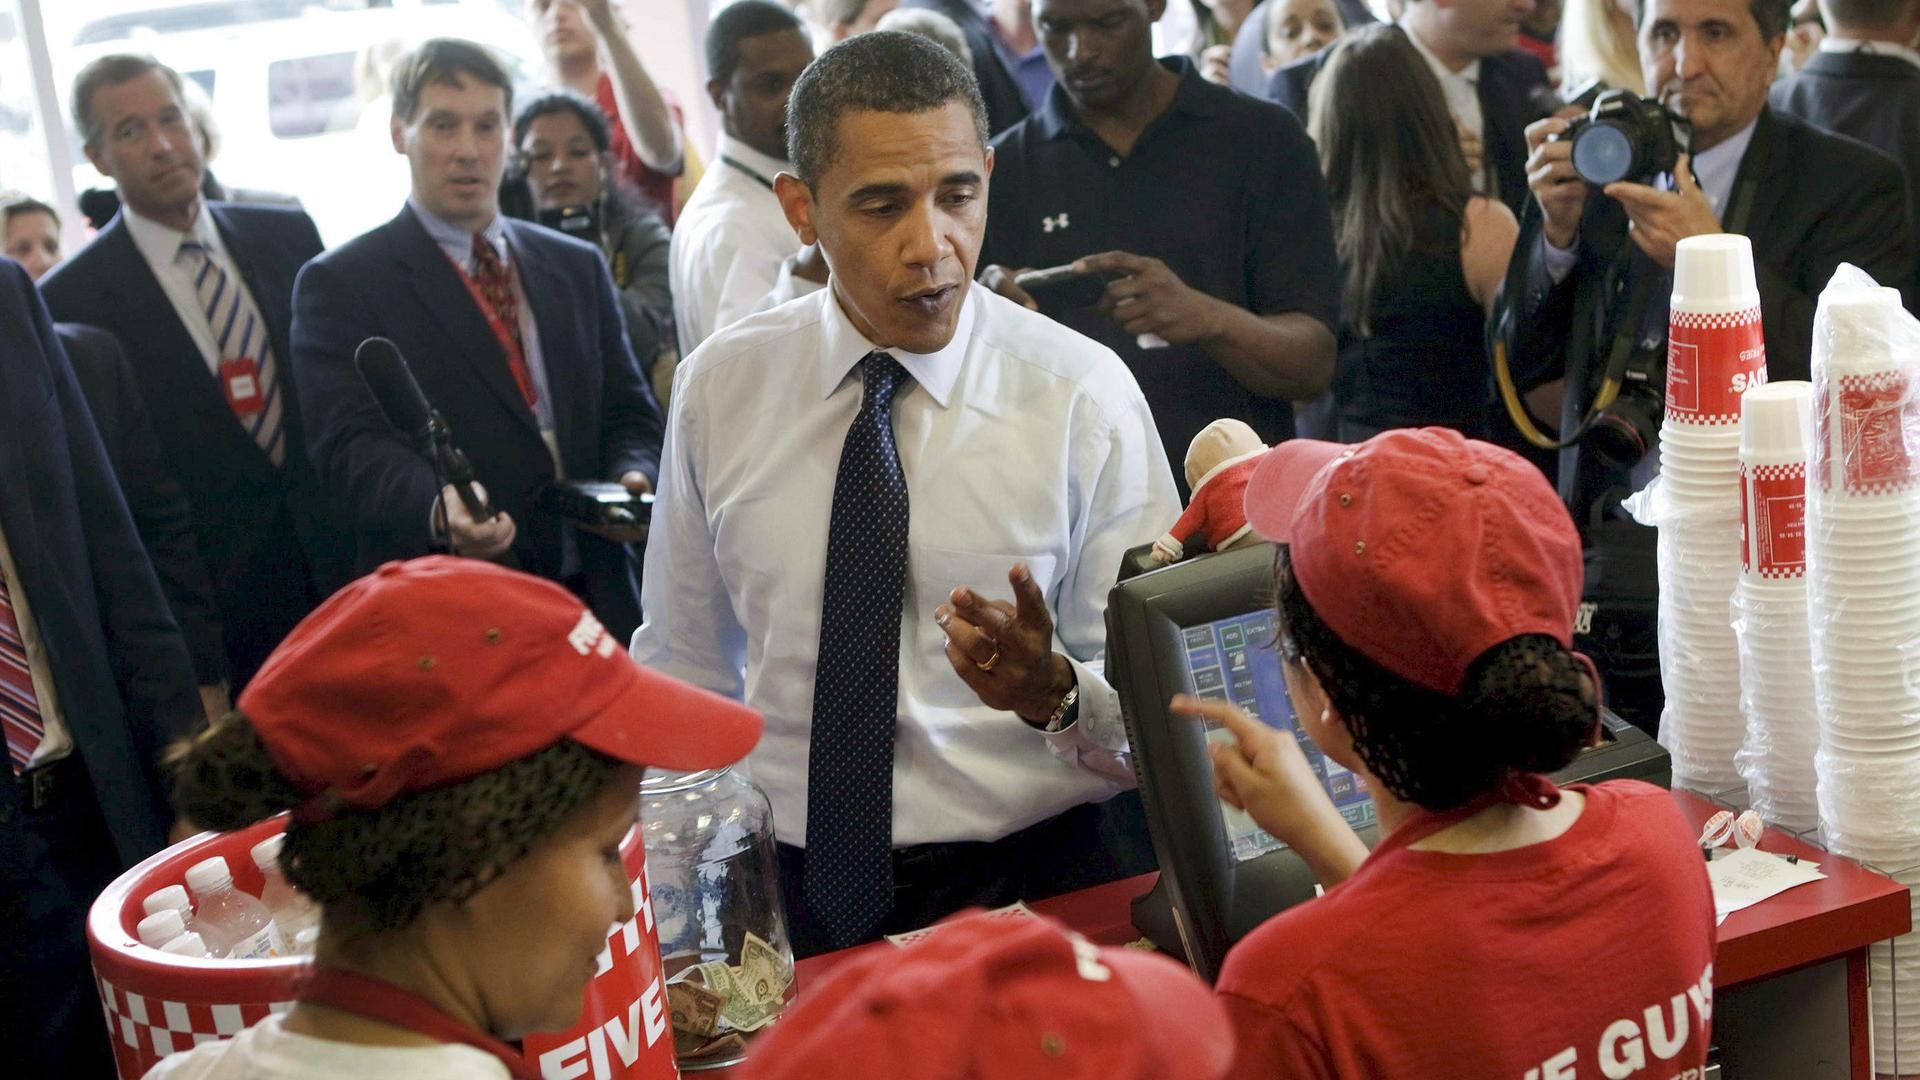 """US President Barack Obama (C) orders lunch at a """"Five Guys"""" burgers and fries restaurant in Washington, DC, USA, 29 May 2009 .President Obama traveled with his motorcade to the burger restaurant in Southeast Washington DC. EPA/Brendan Smialowski +++ dpa-Bildfunk +++"""